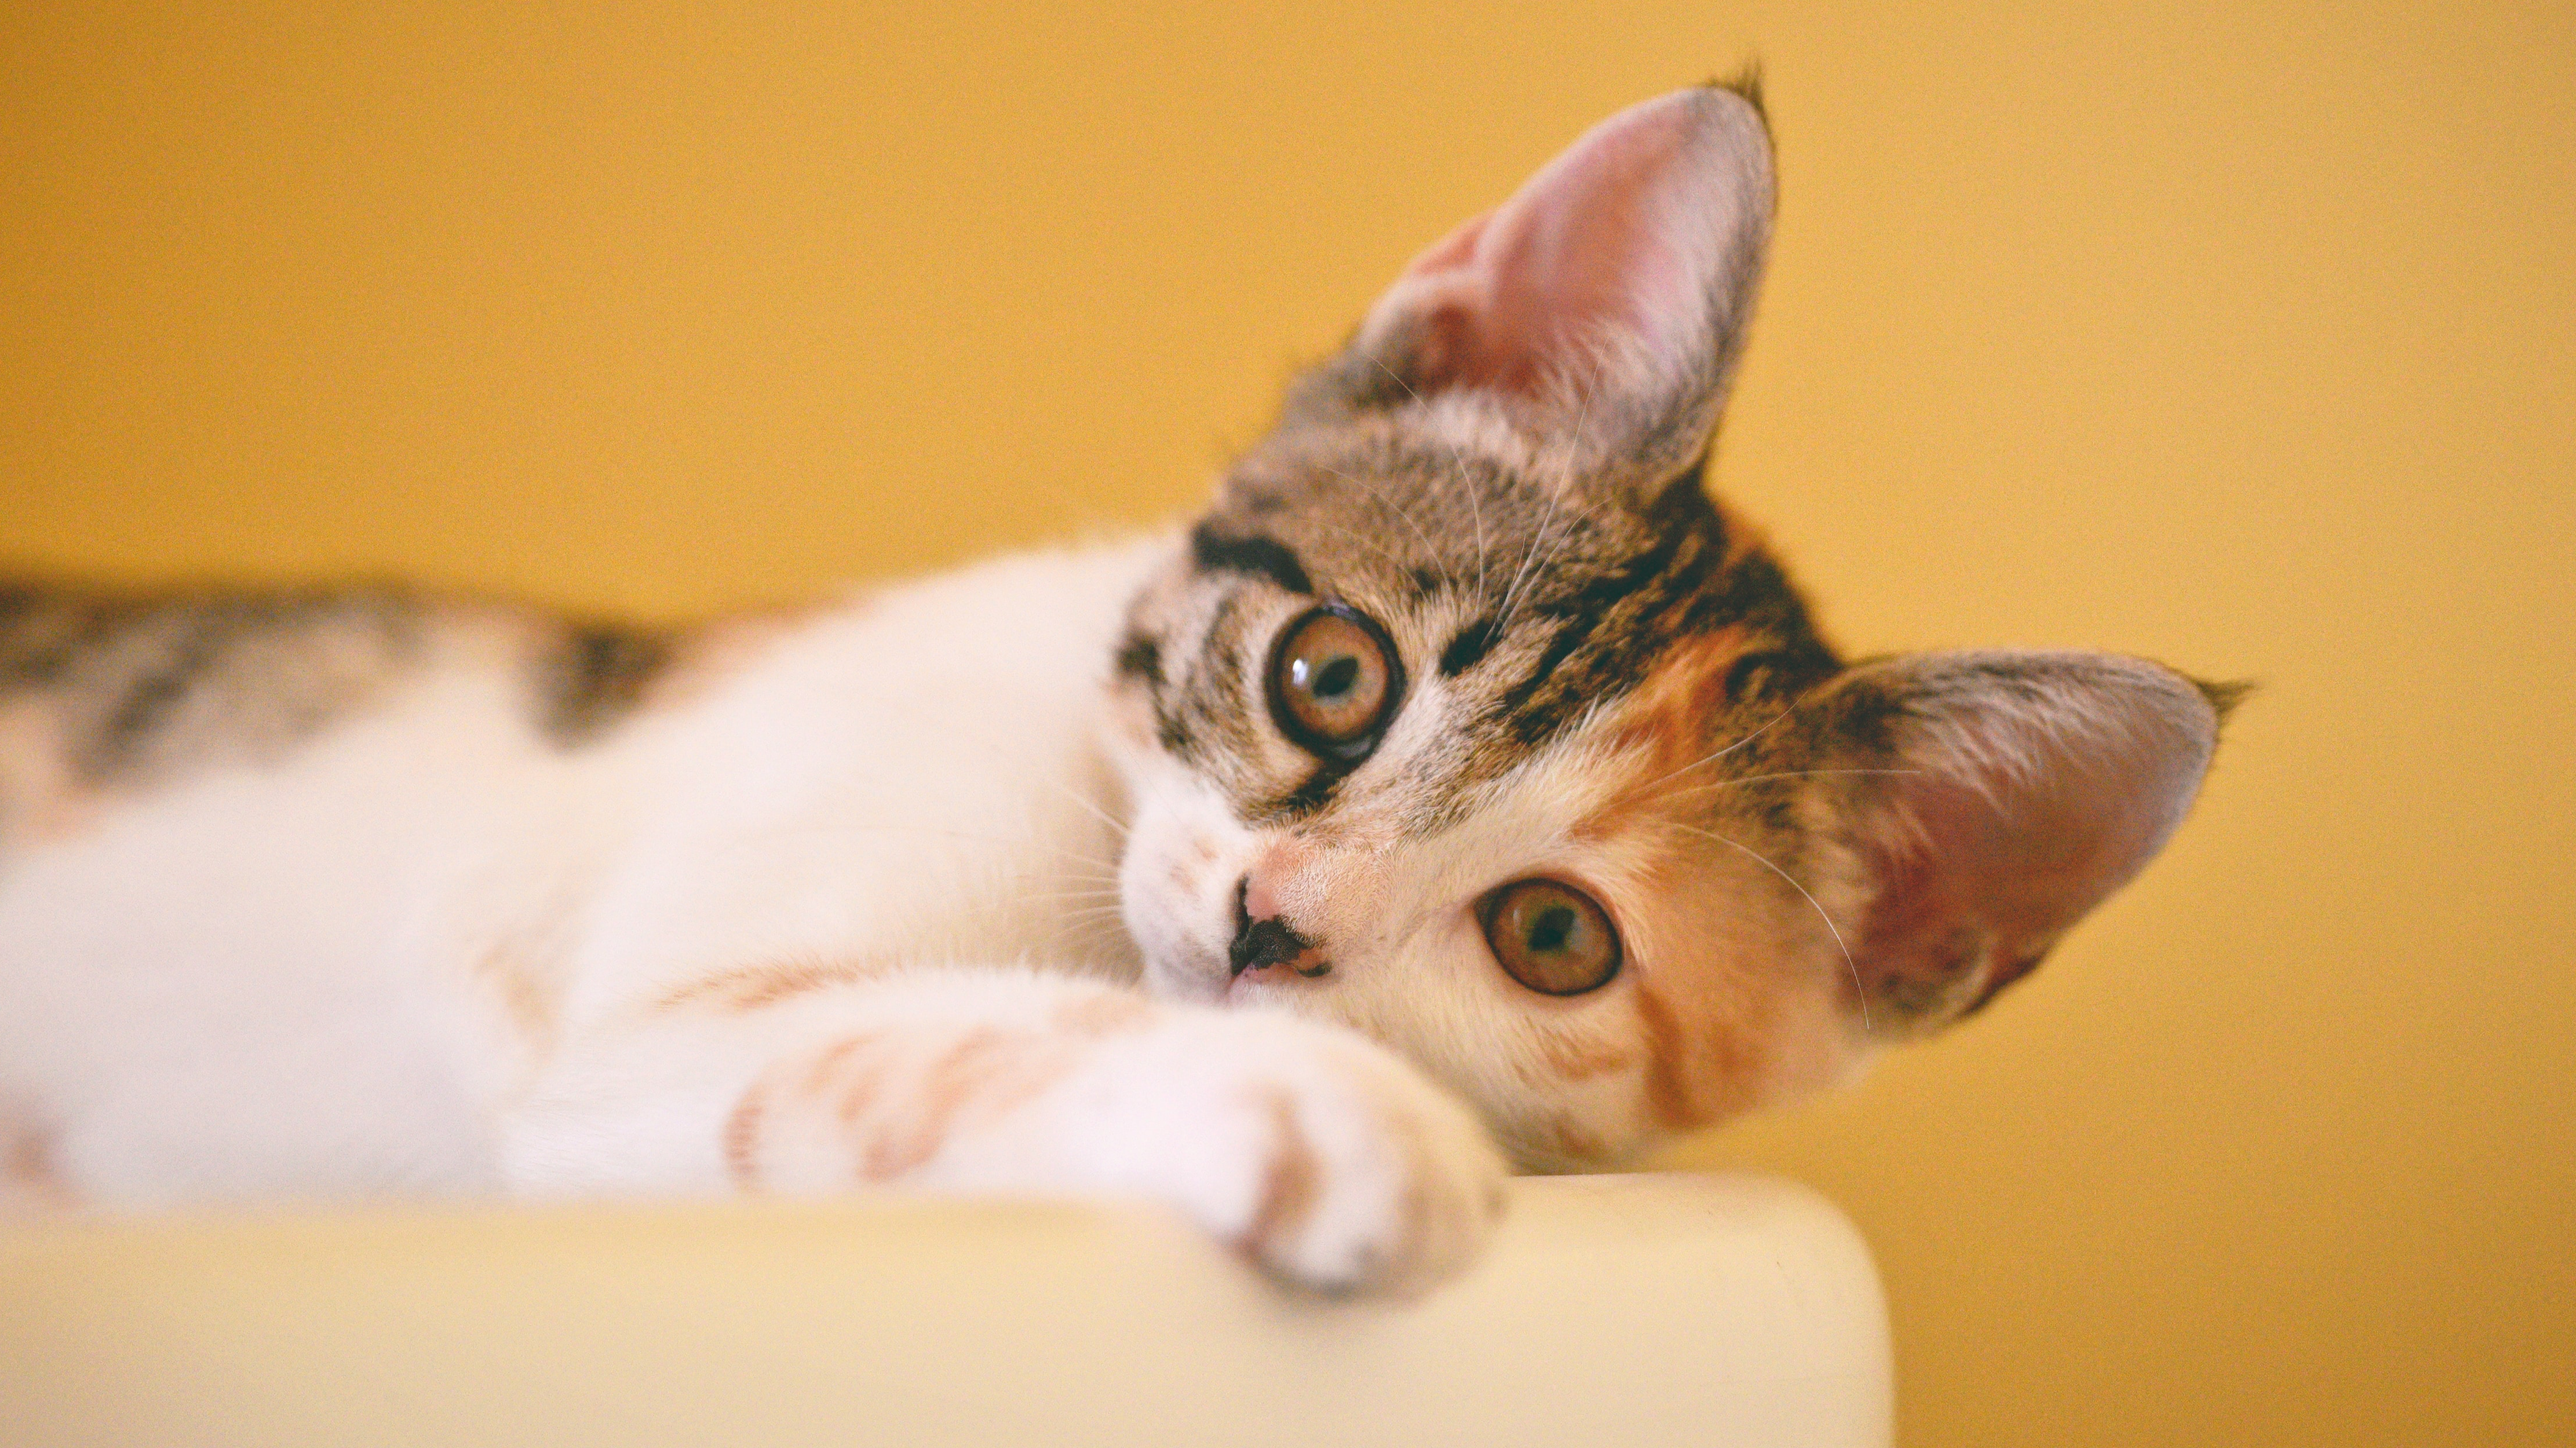 The Average Cat Owner Takes Seven Photos Of Their Pet A Day